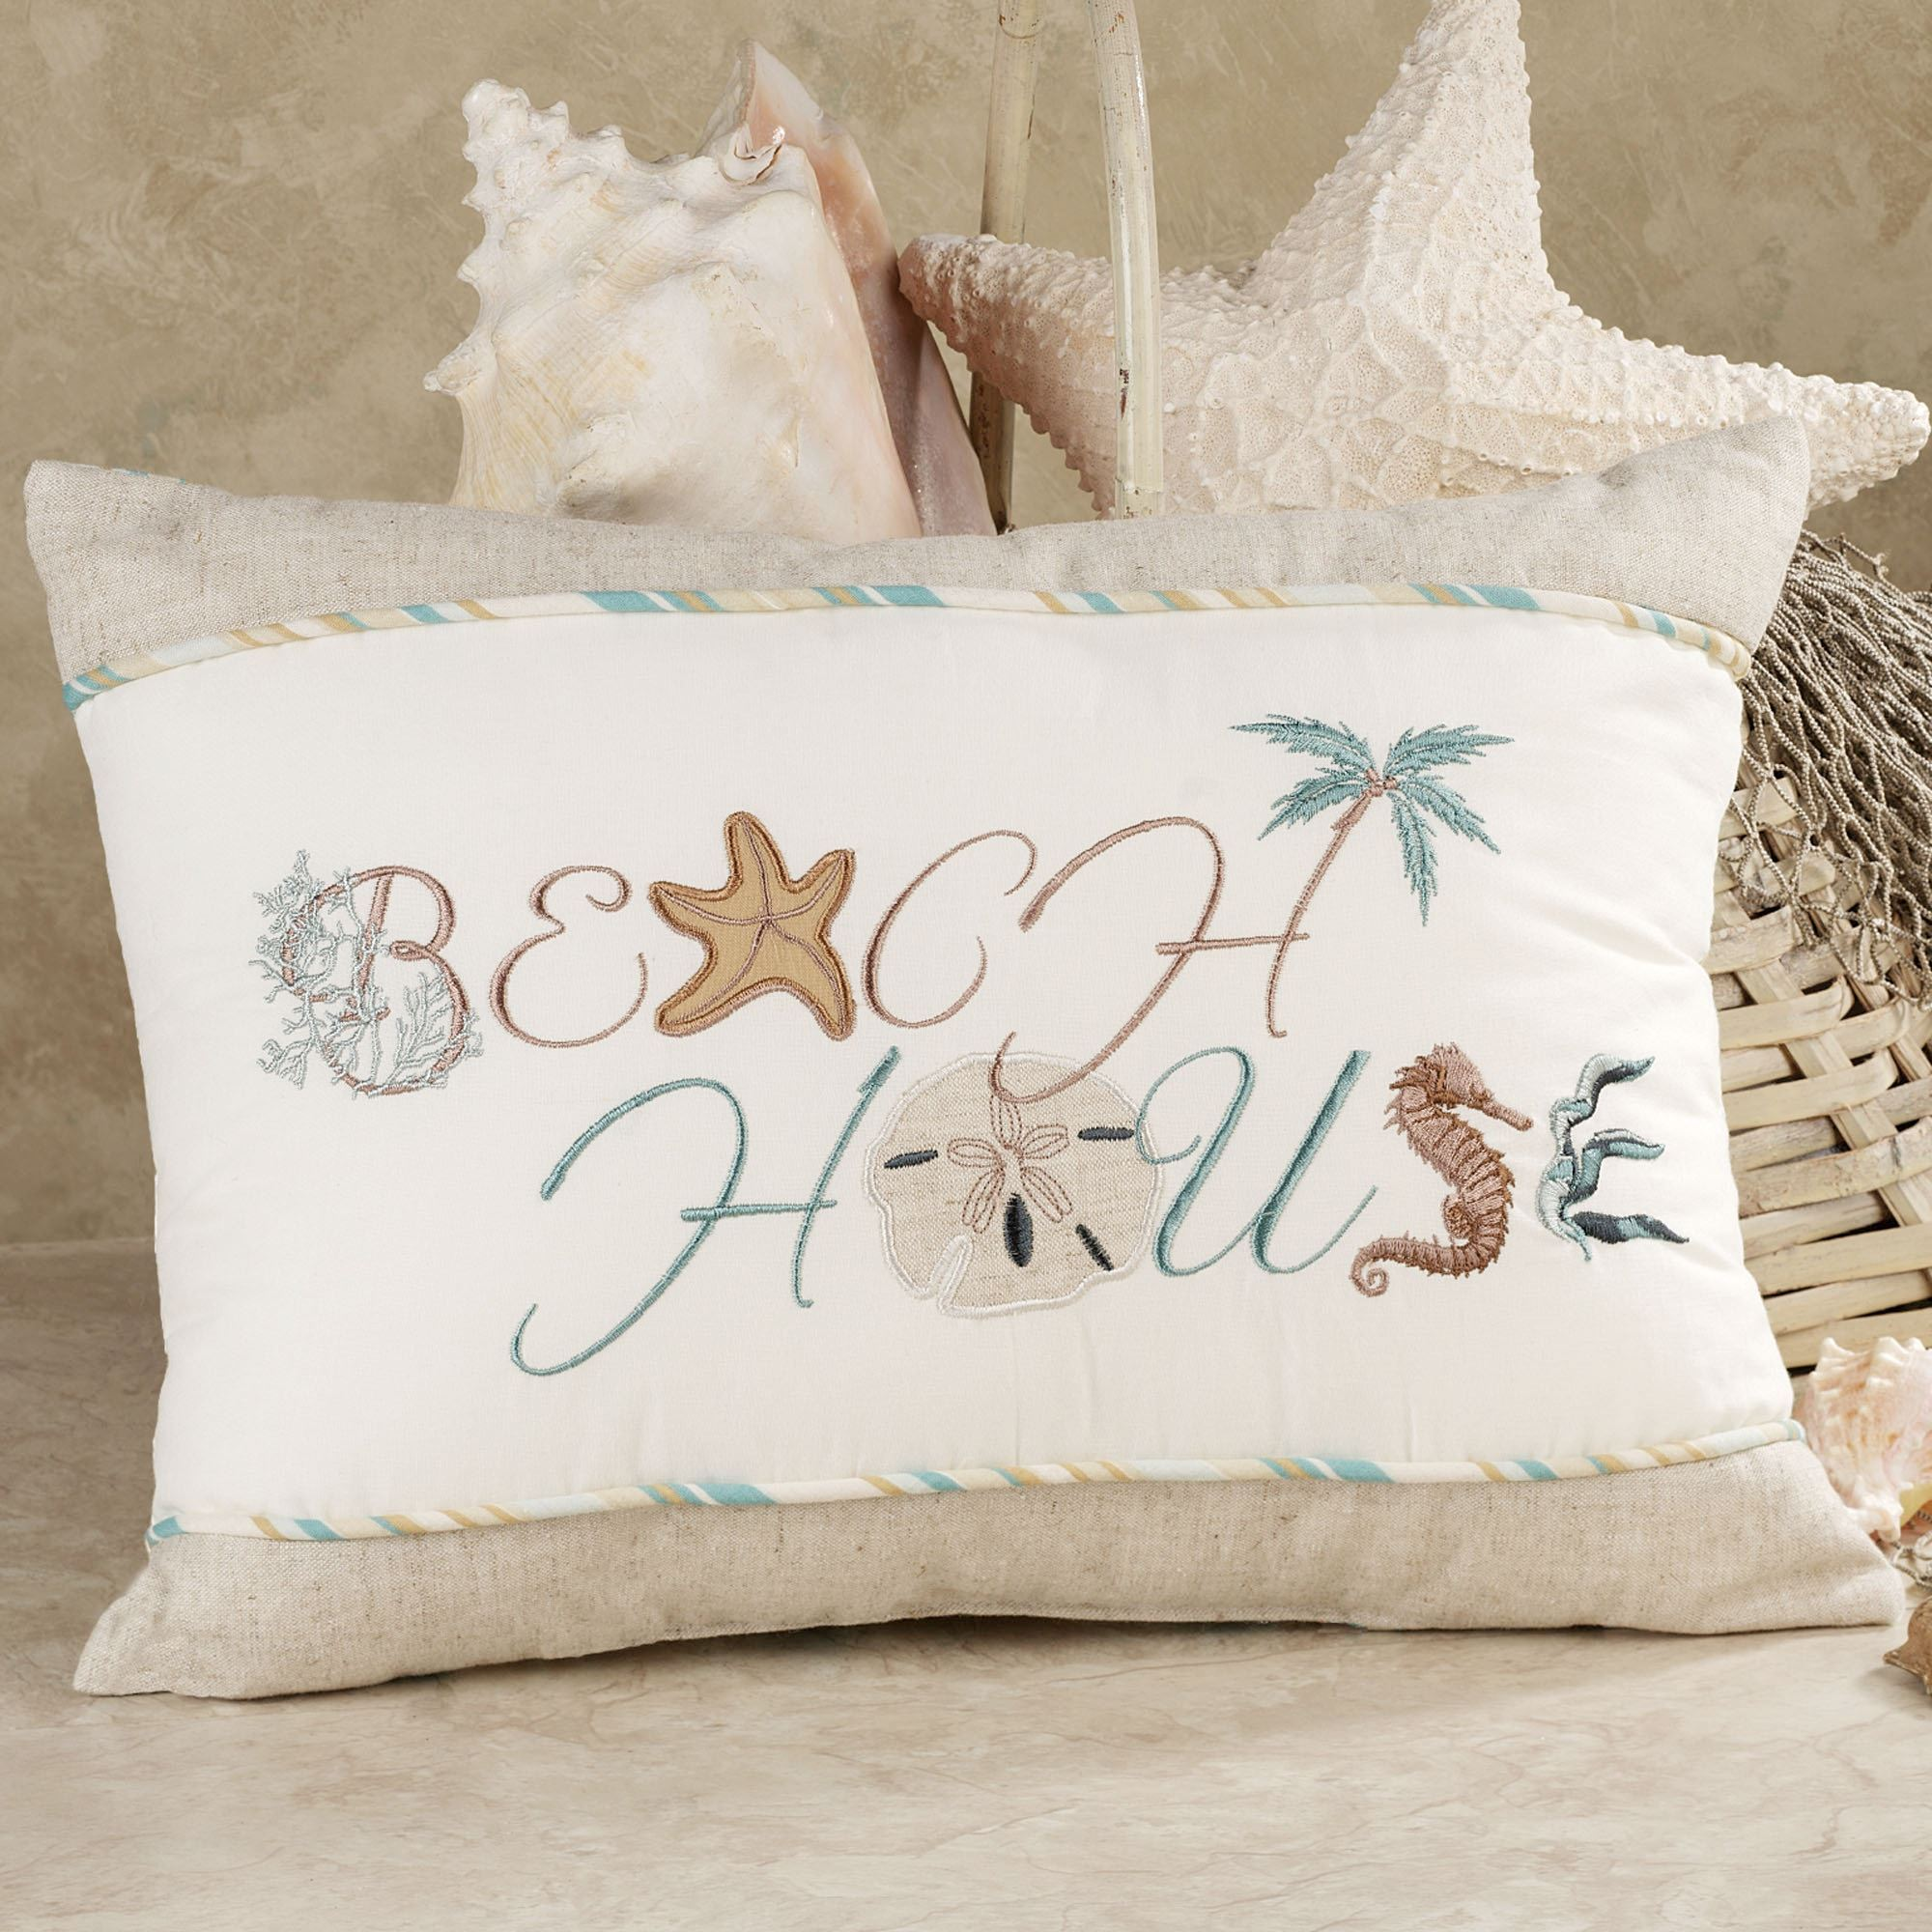 wraps beach pillows pillow and pin burlap prints block